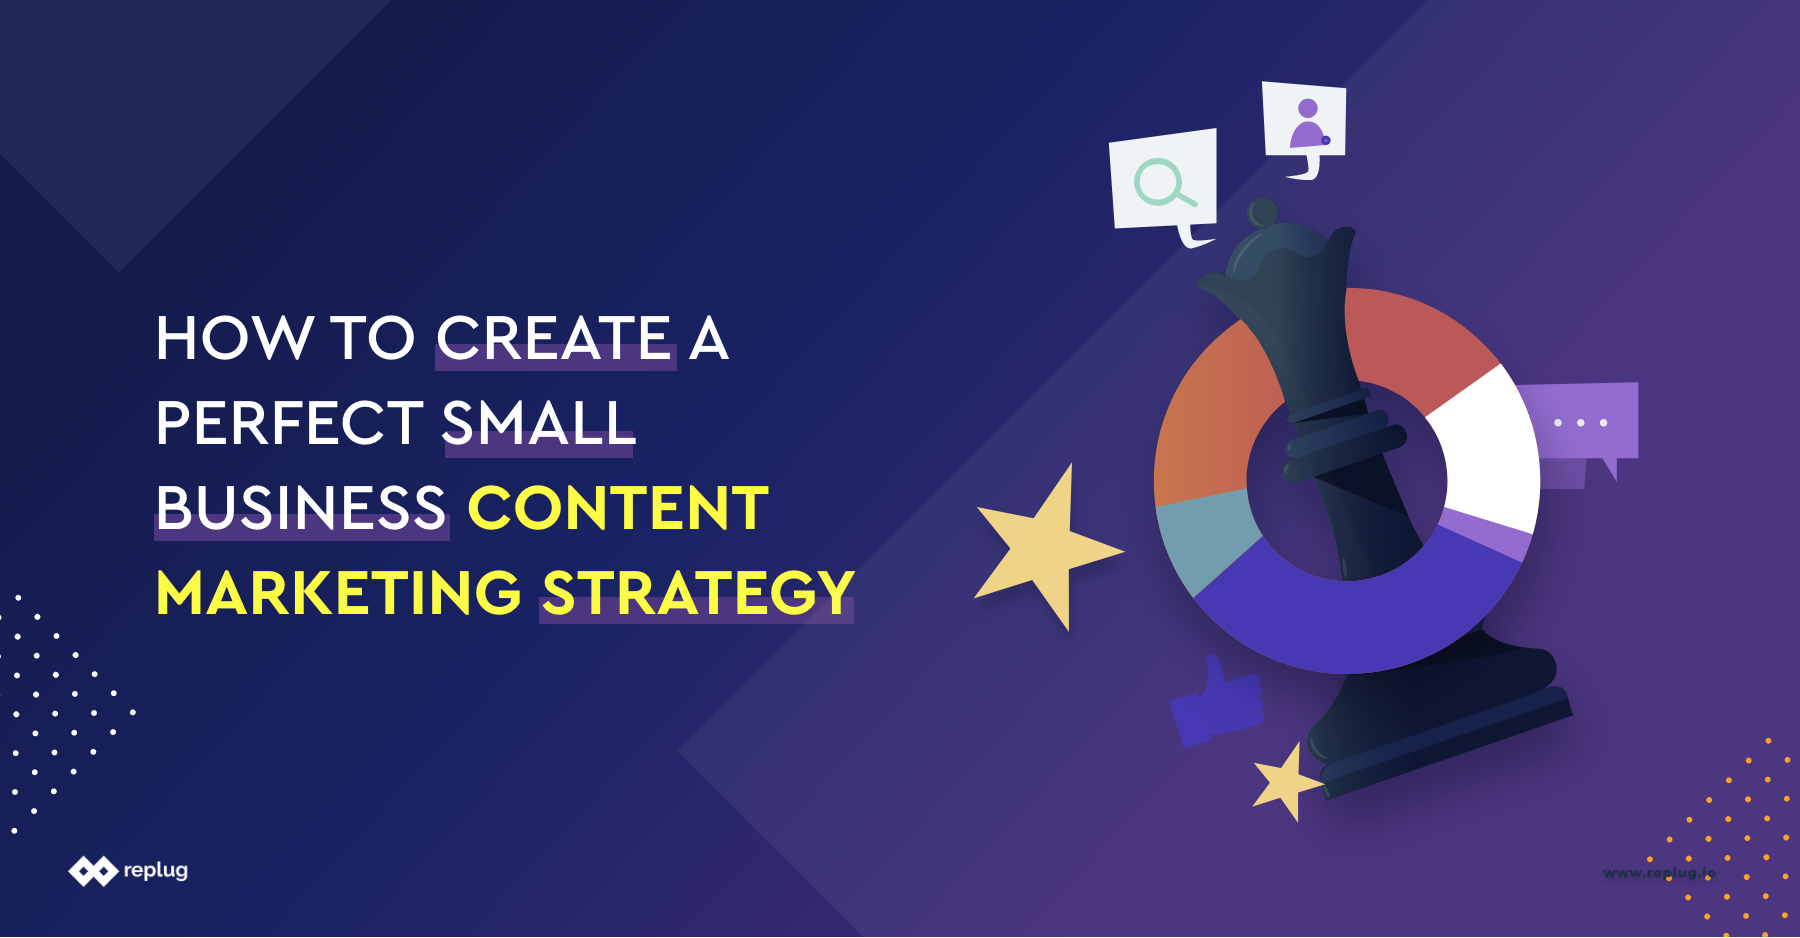 How to Create a Perfect Small Business Content Marketing Strategy